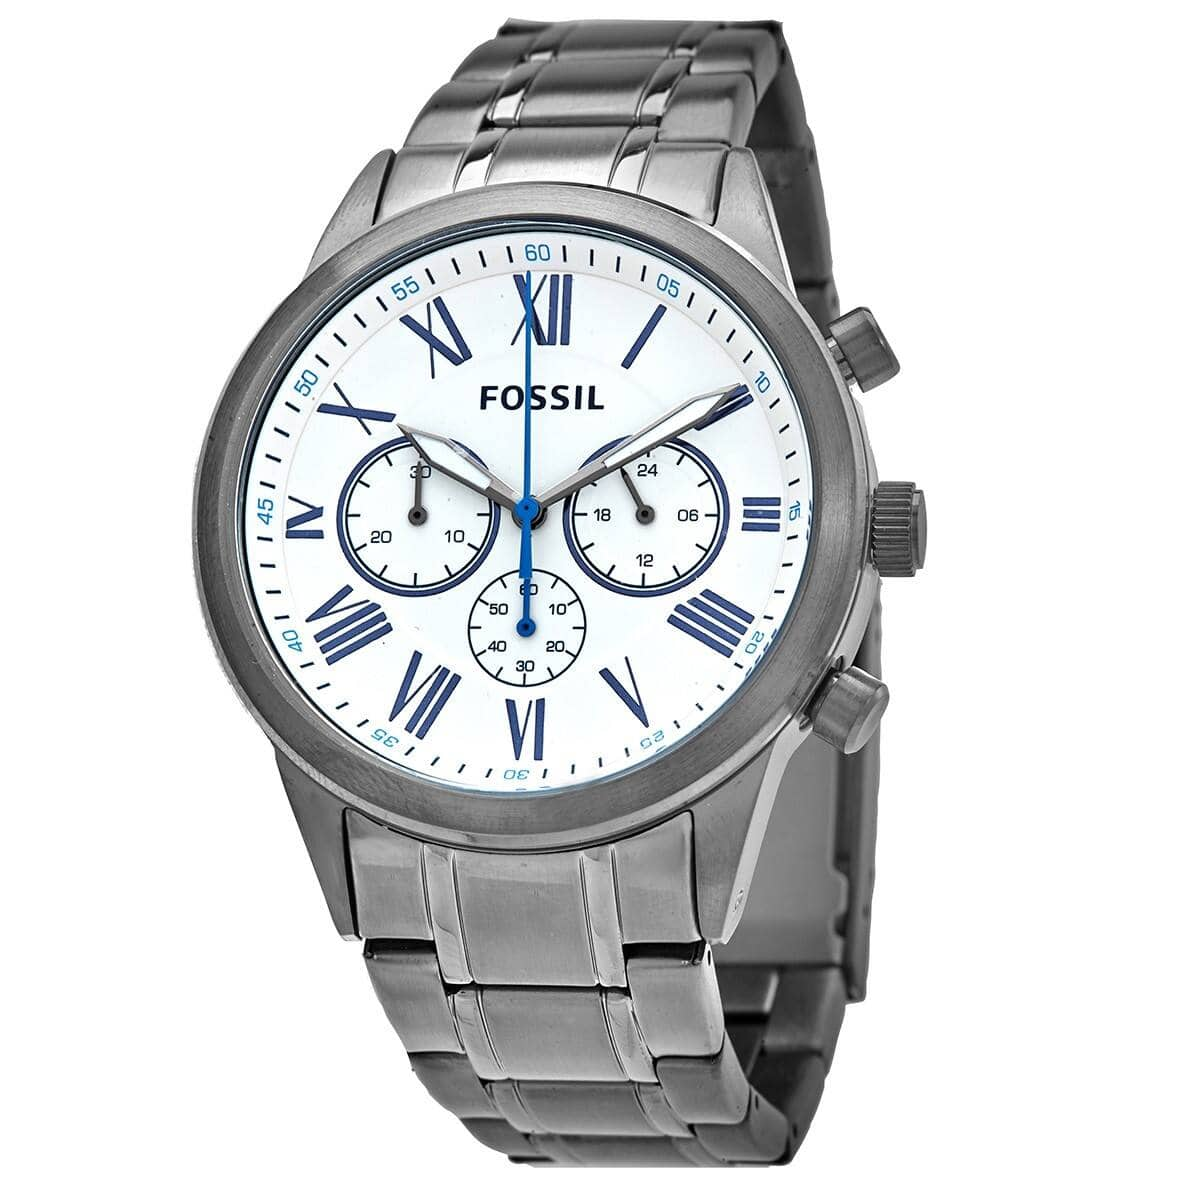 Fossil Flynn Chronograph Quartz White Dial Mens Watch - $49.99 + Free Shipping